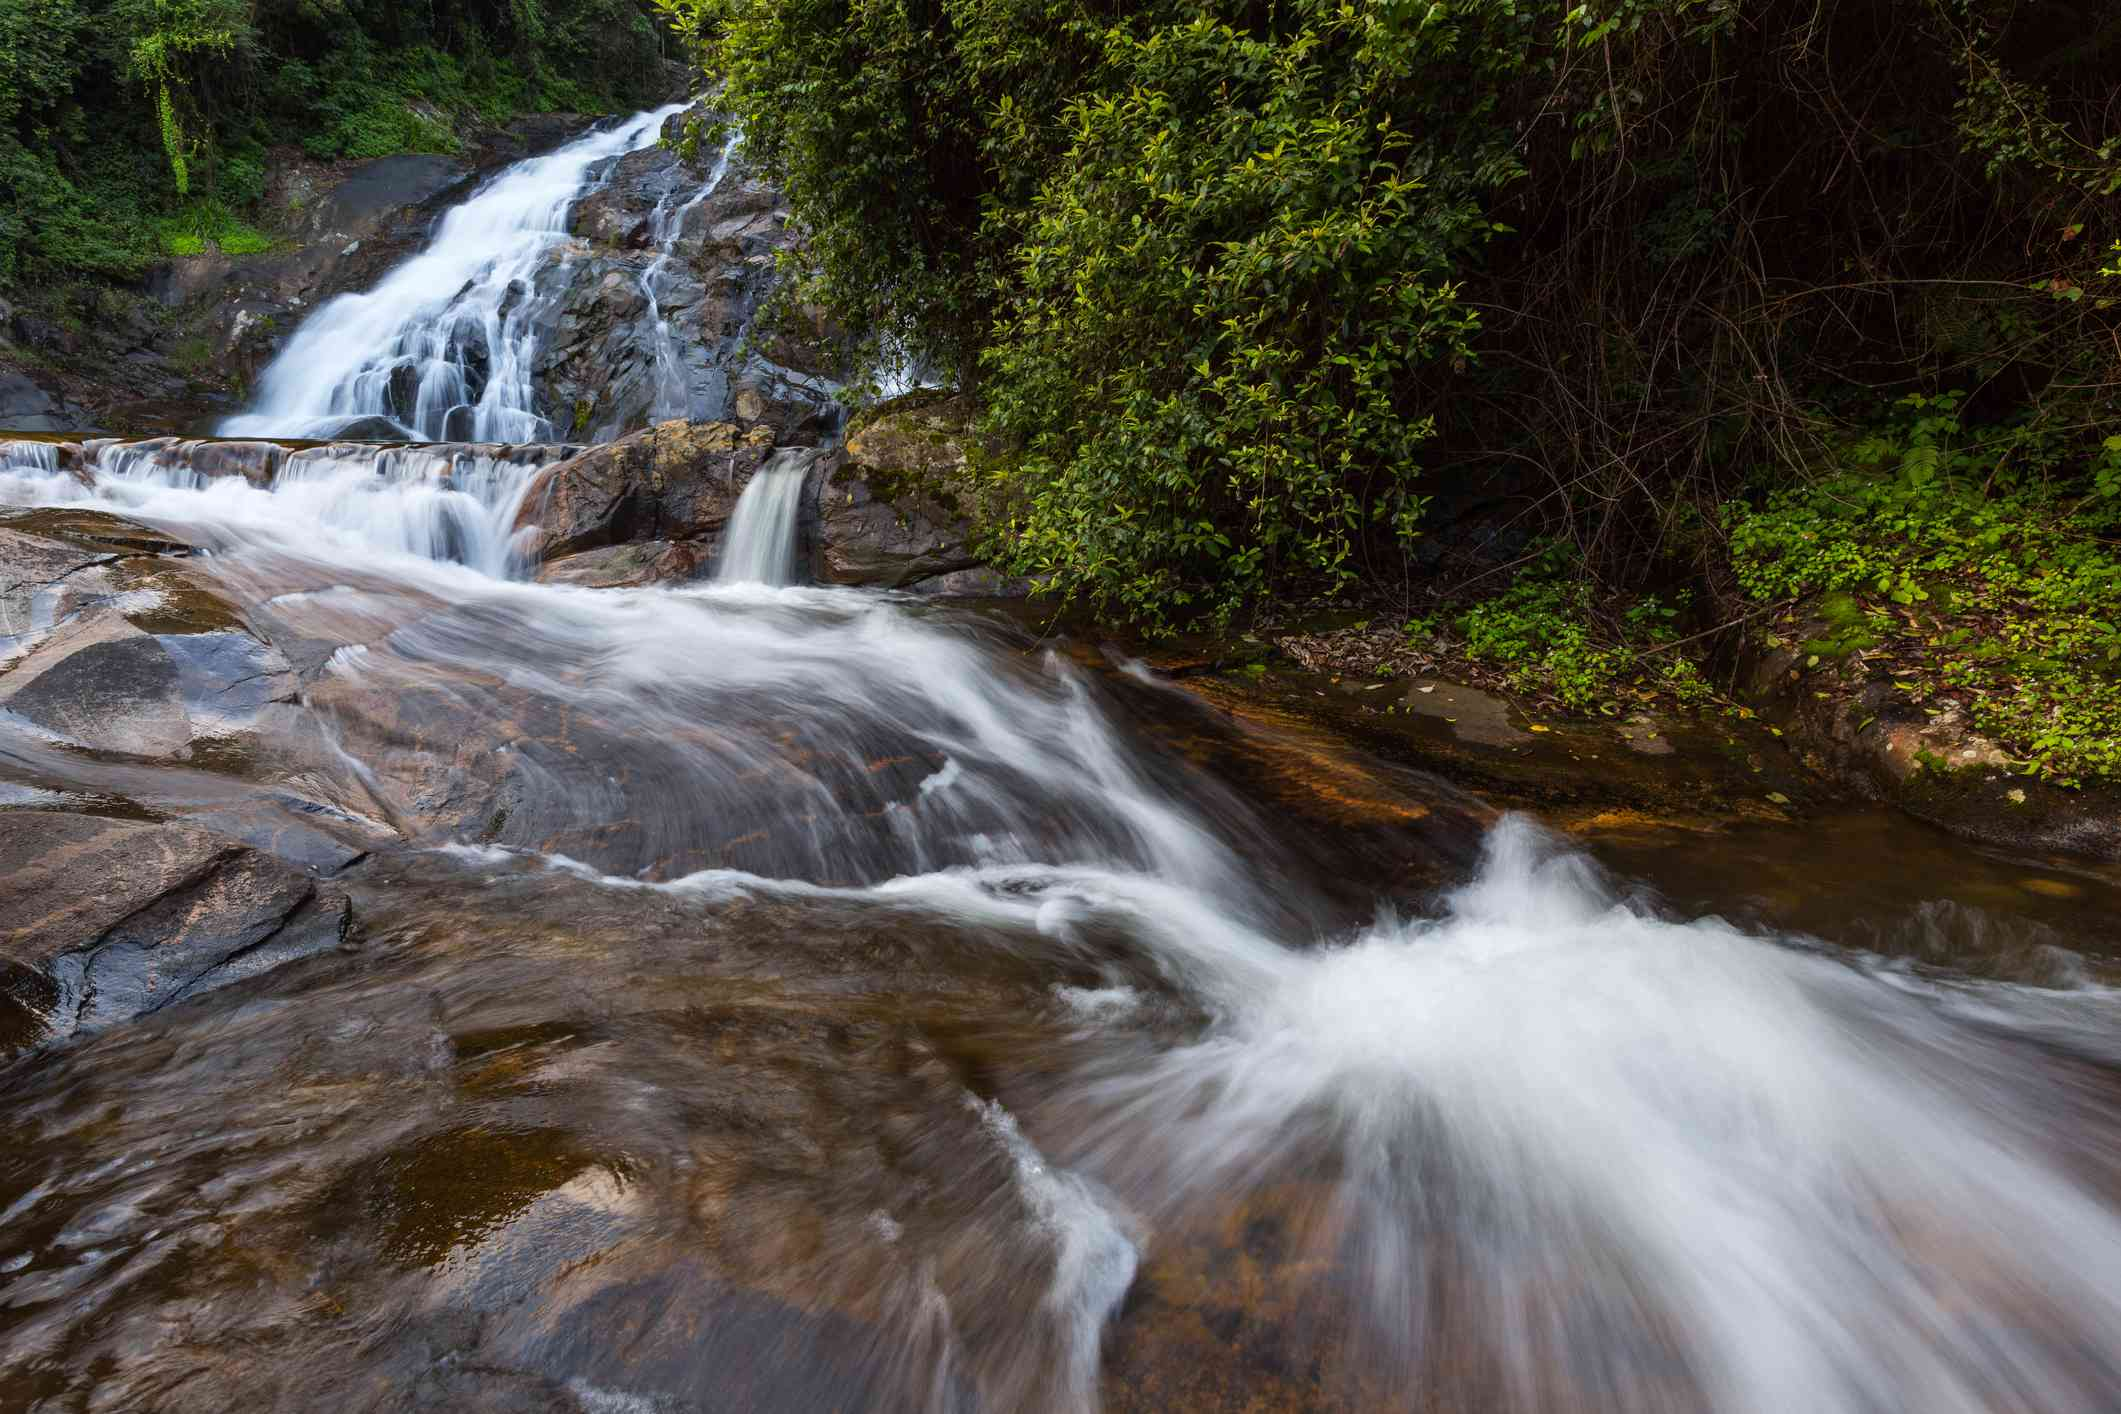 Debengeni Waterfall, Limpopo Province, South Africa